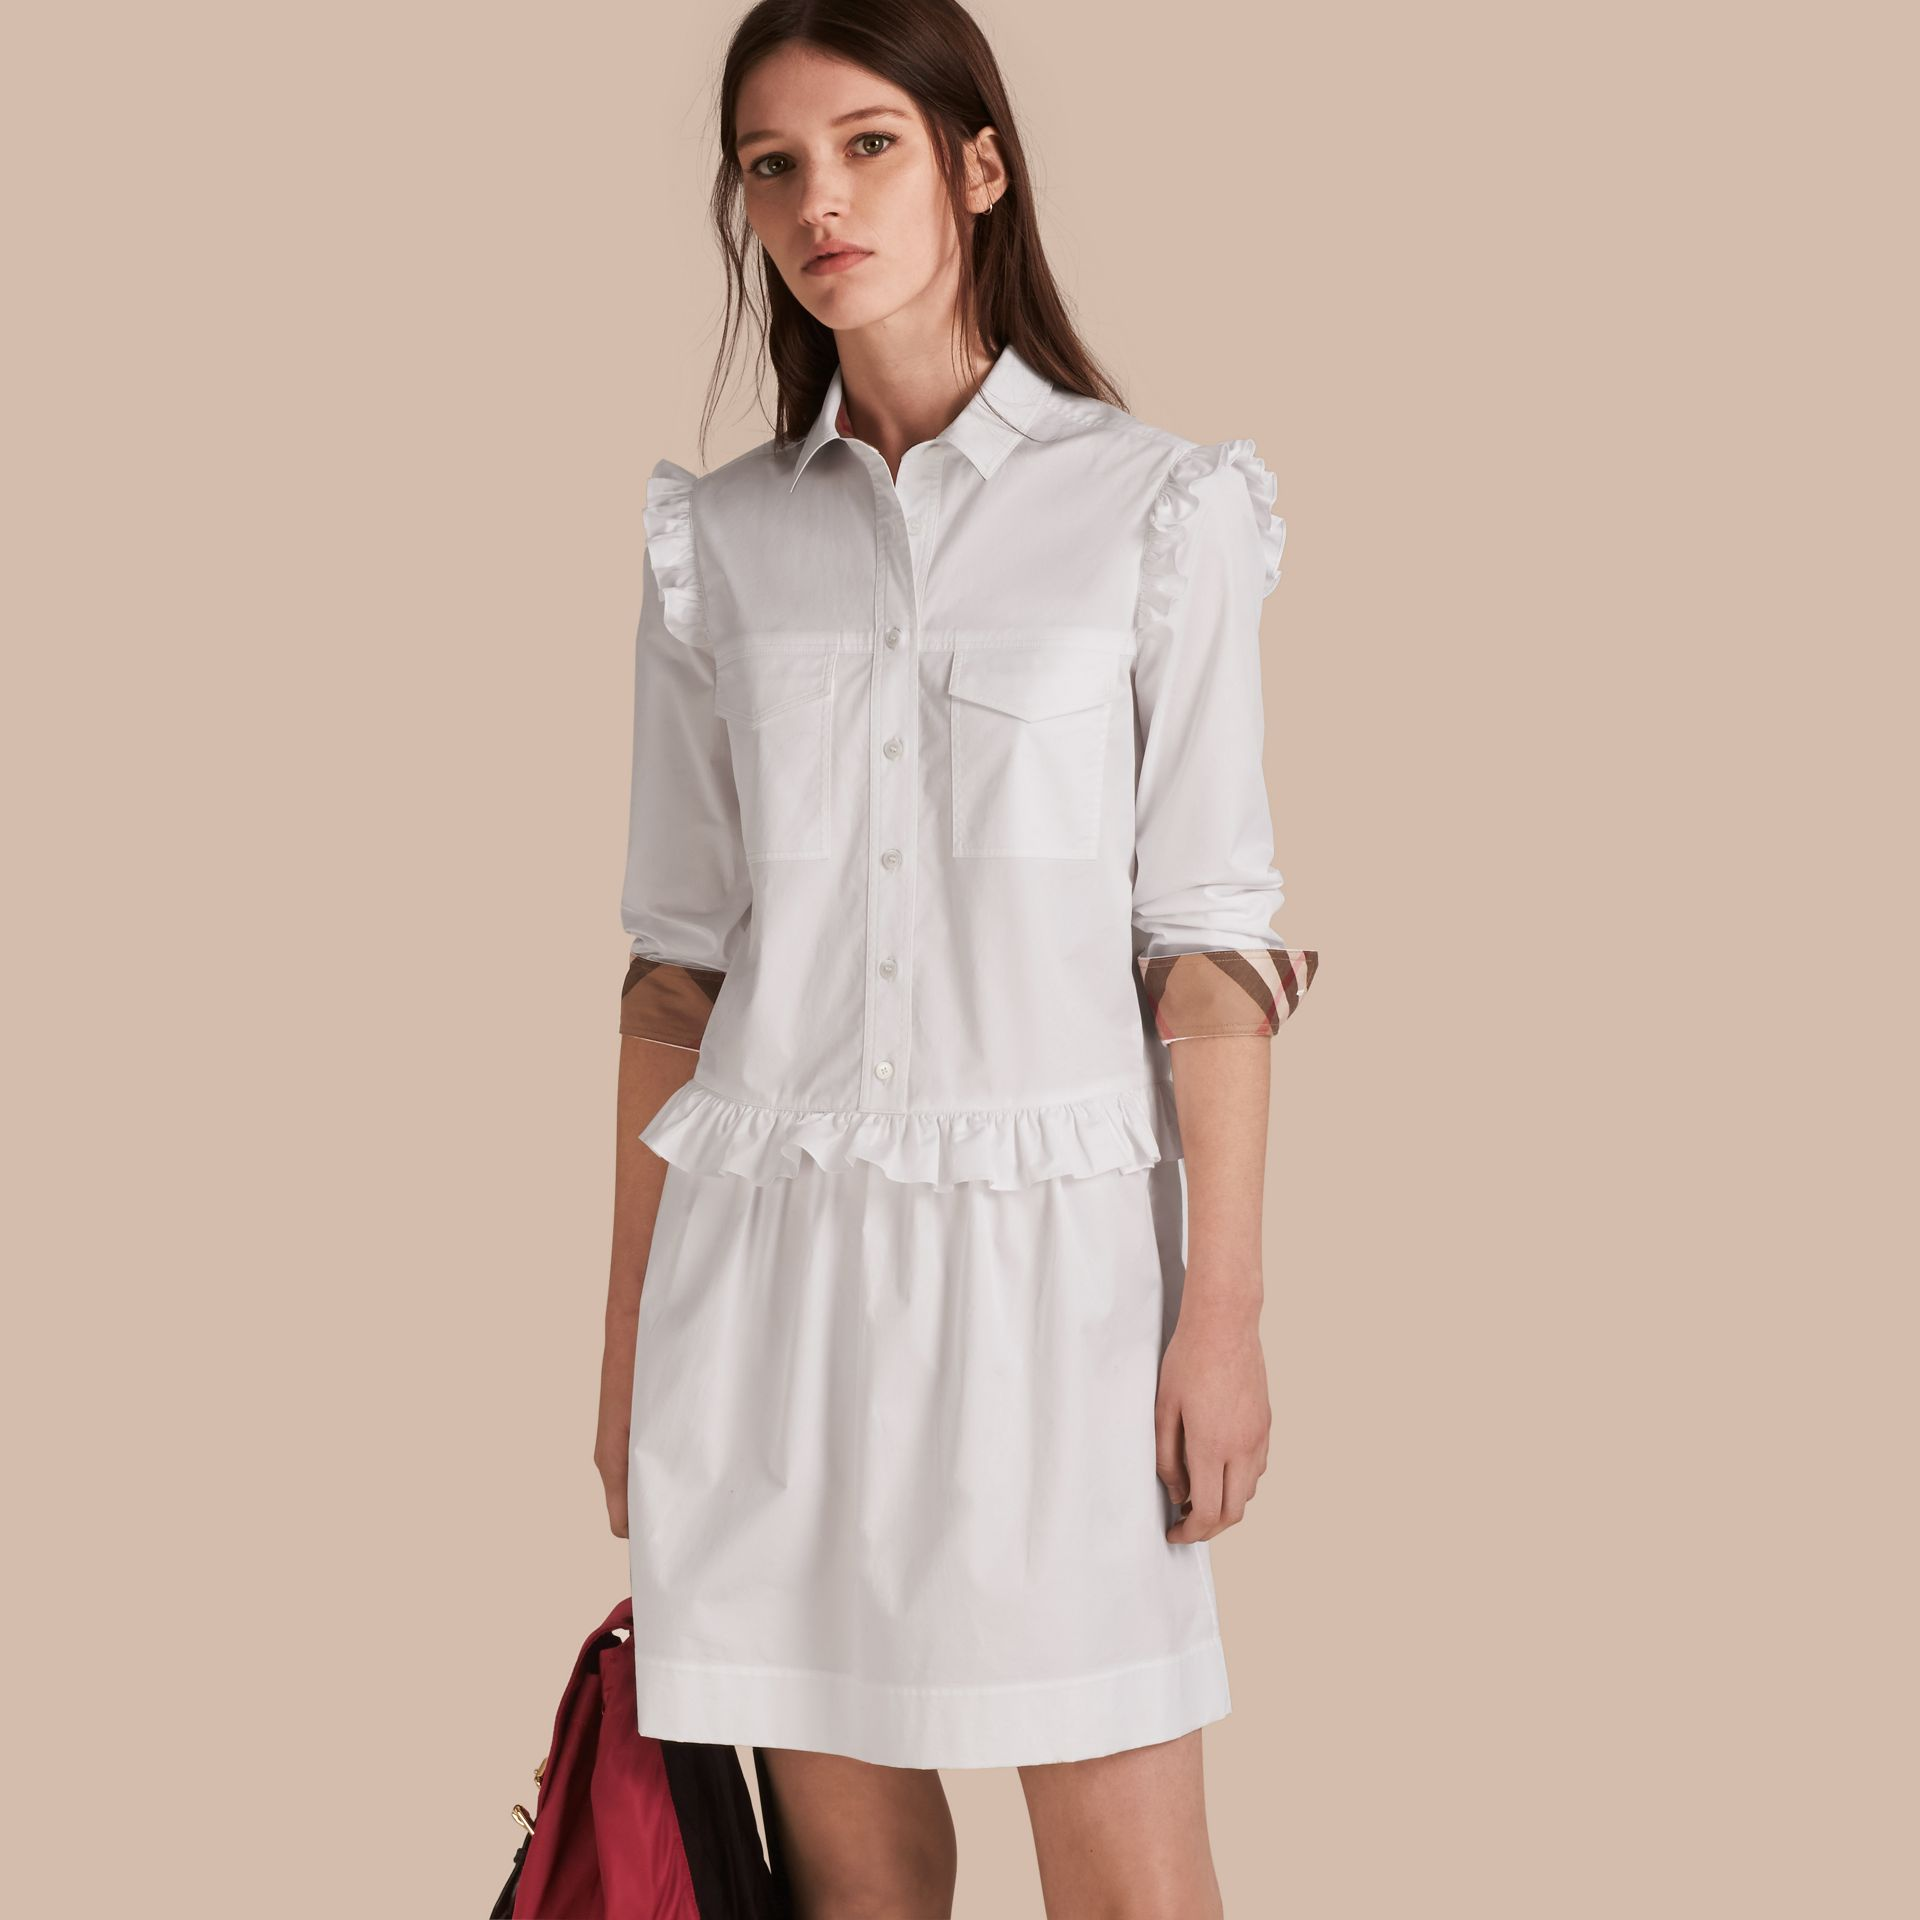 Ruffle and Check Detail Cotton Shirt Dress White - gallery image 1